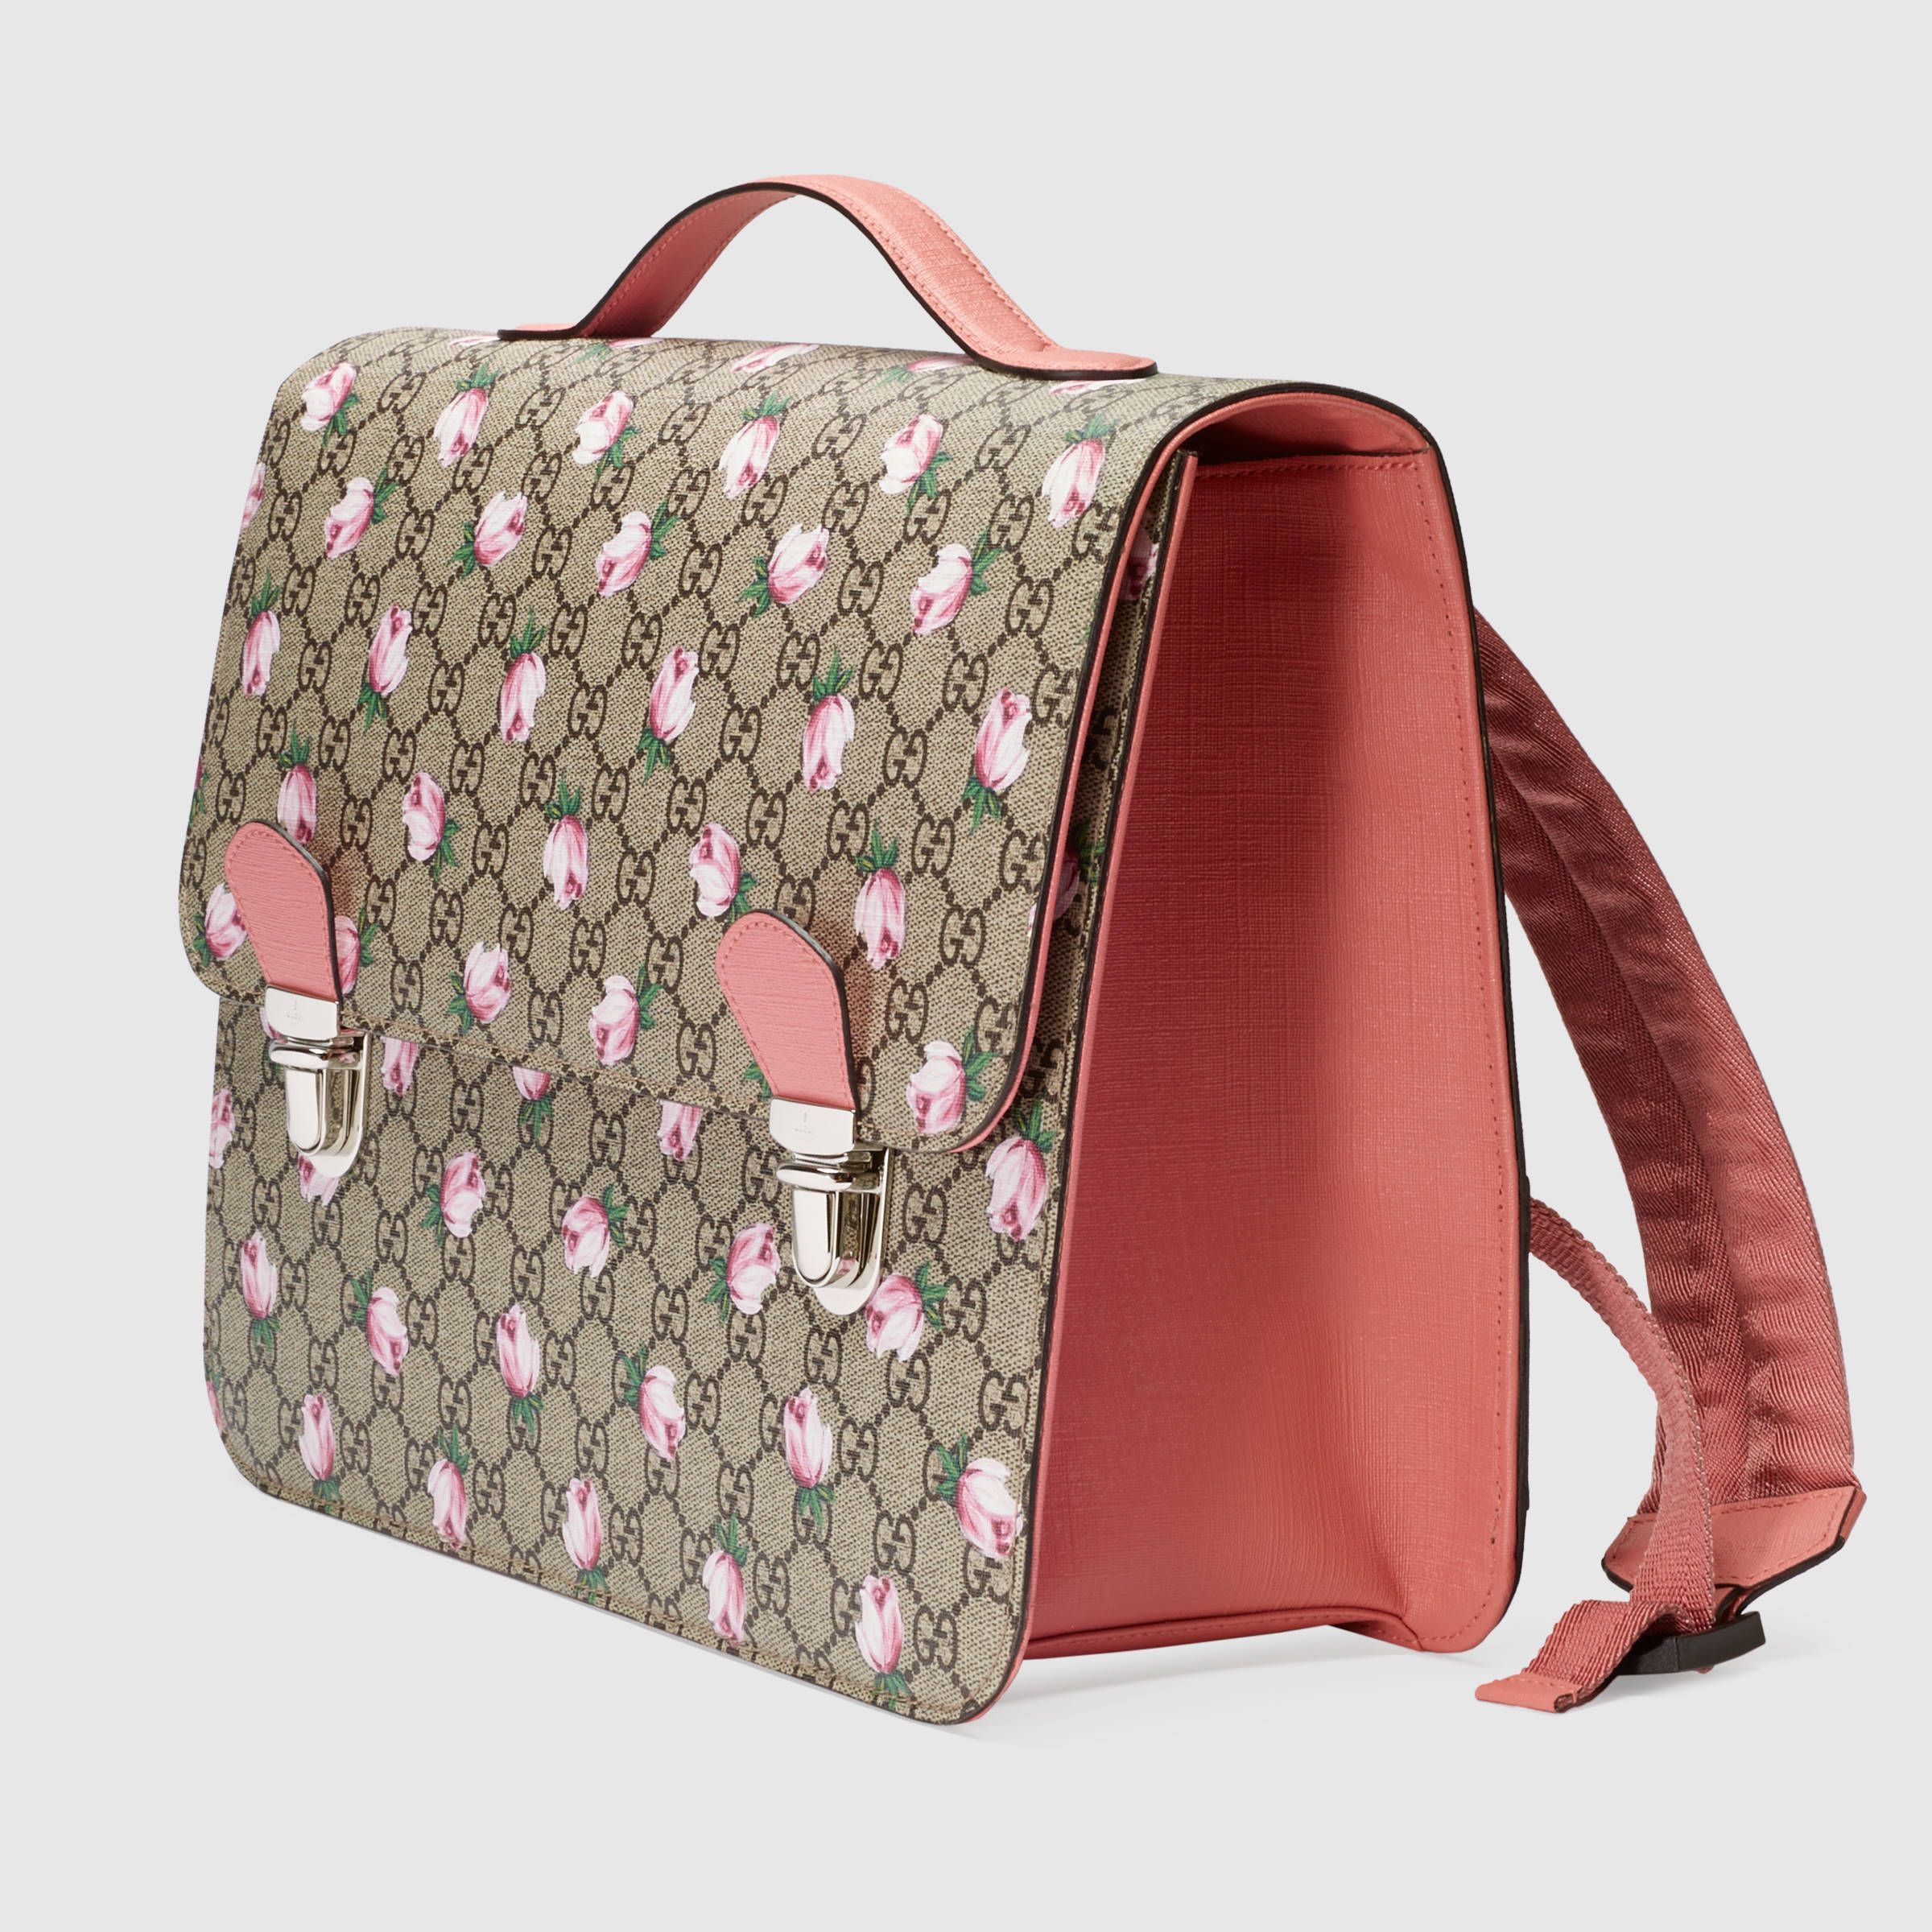 425f32d0e933 Gucci Children - Children's GG flowers backpack | Kiddie Accessories ...